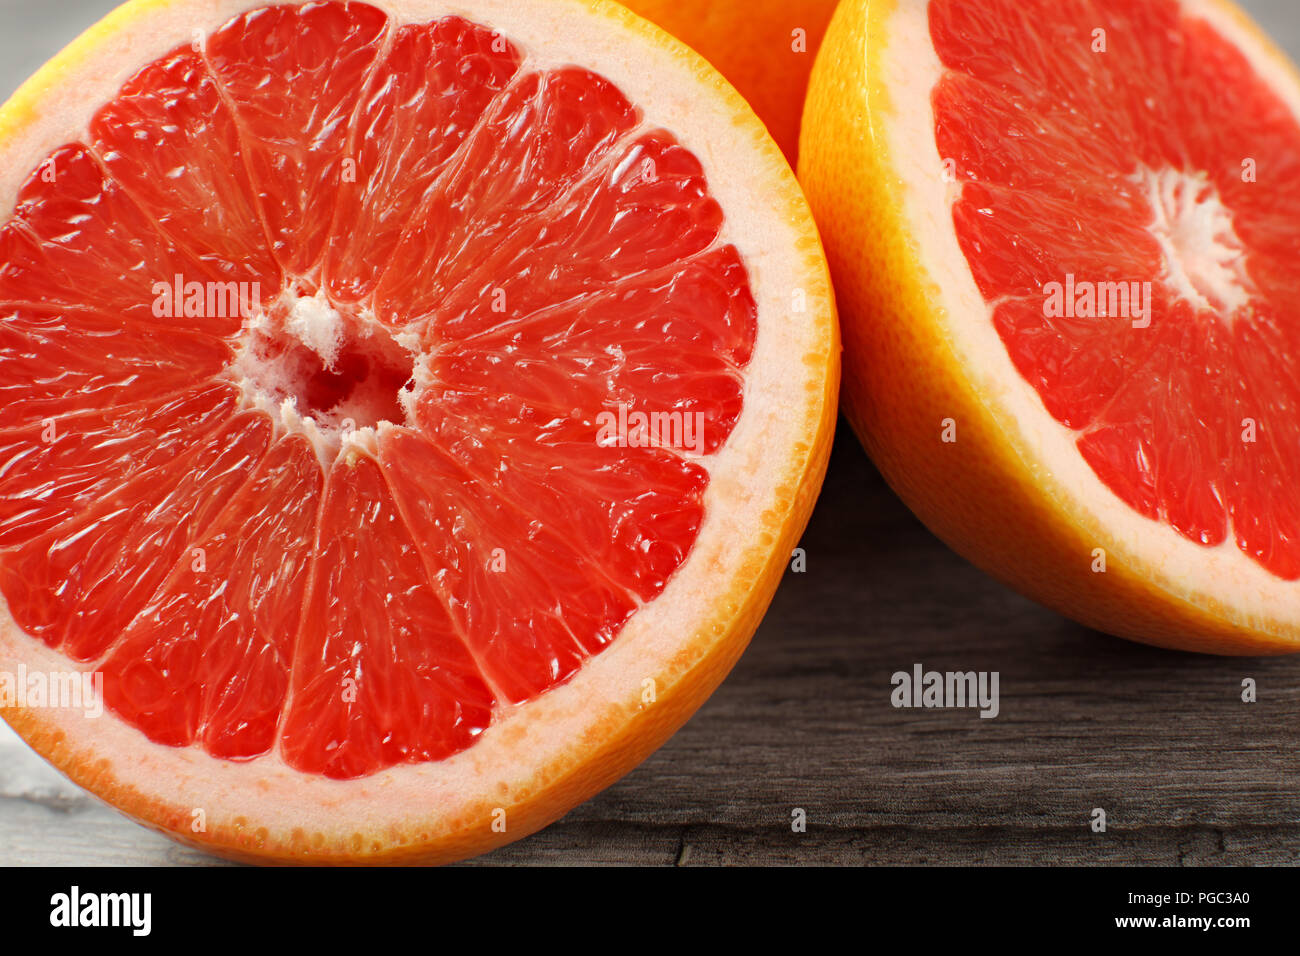 Close up of red grapefruit cut in half - Stock Image